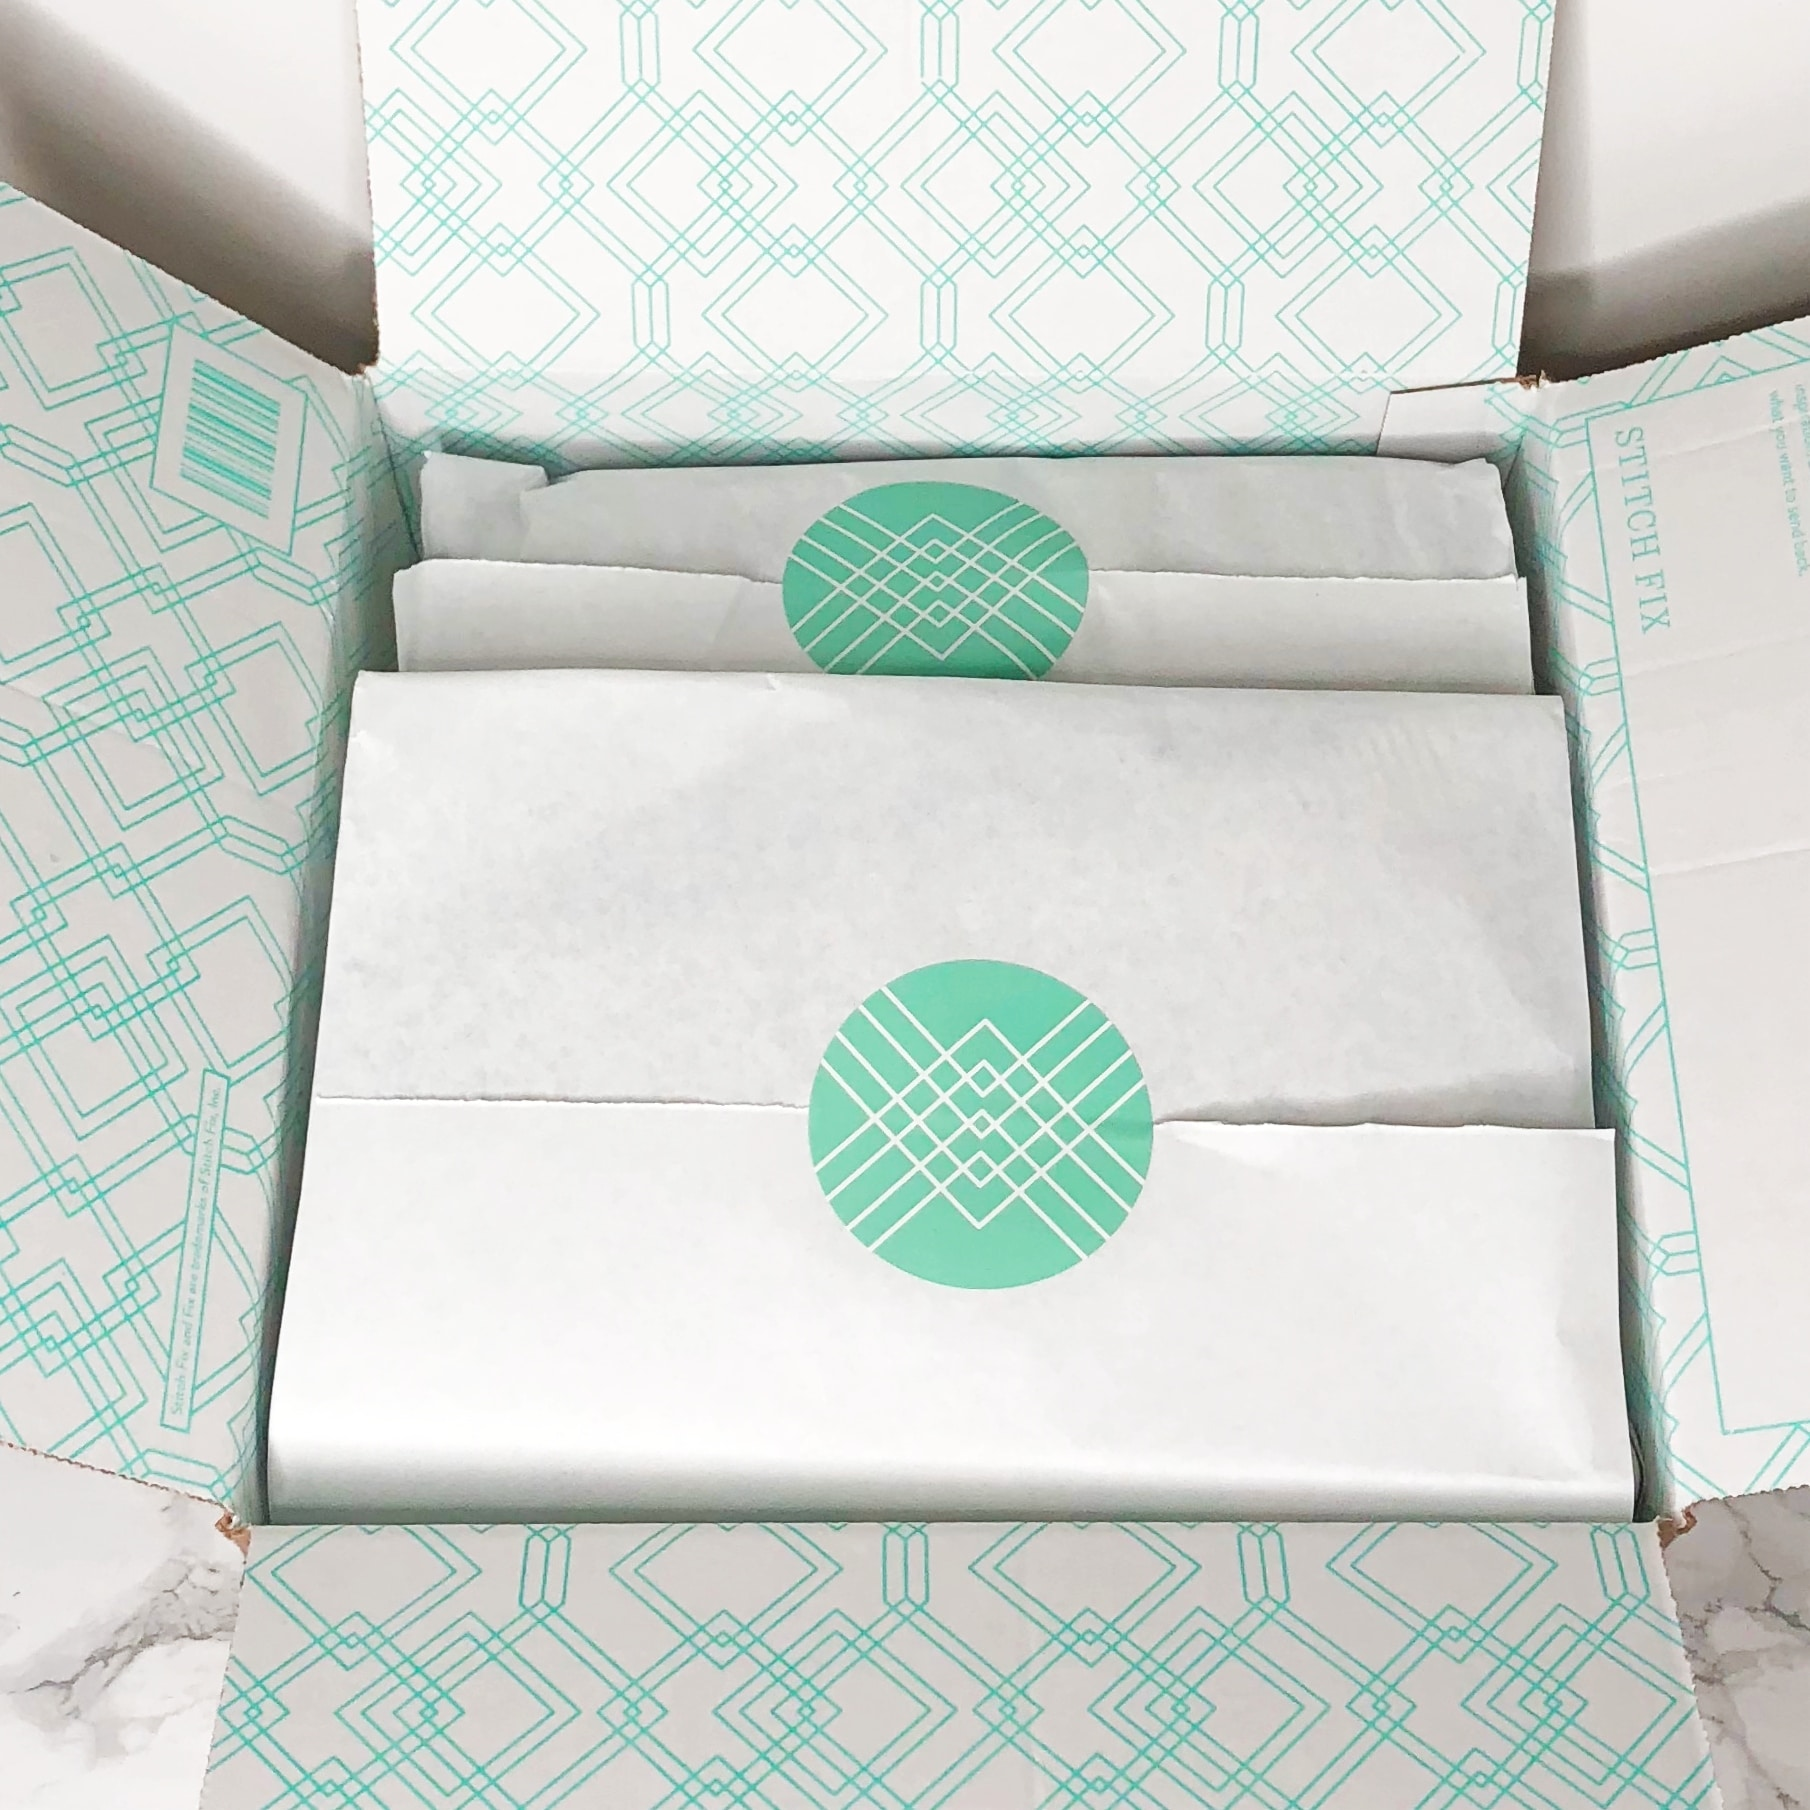 Stitch Fix Reviews - Unboxing